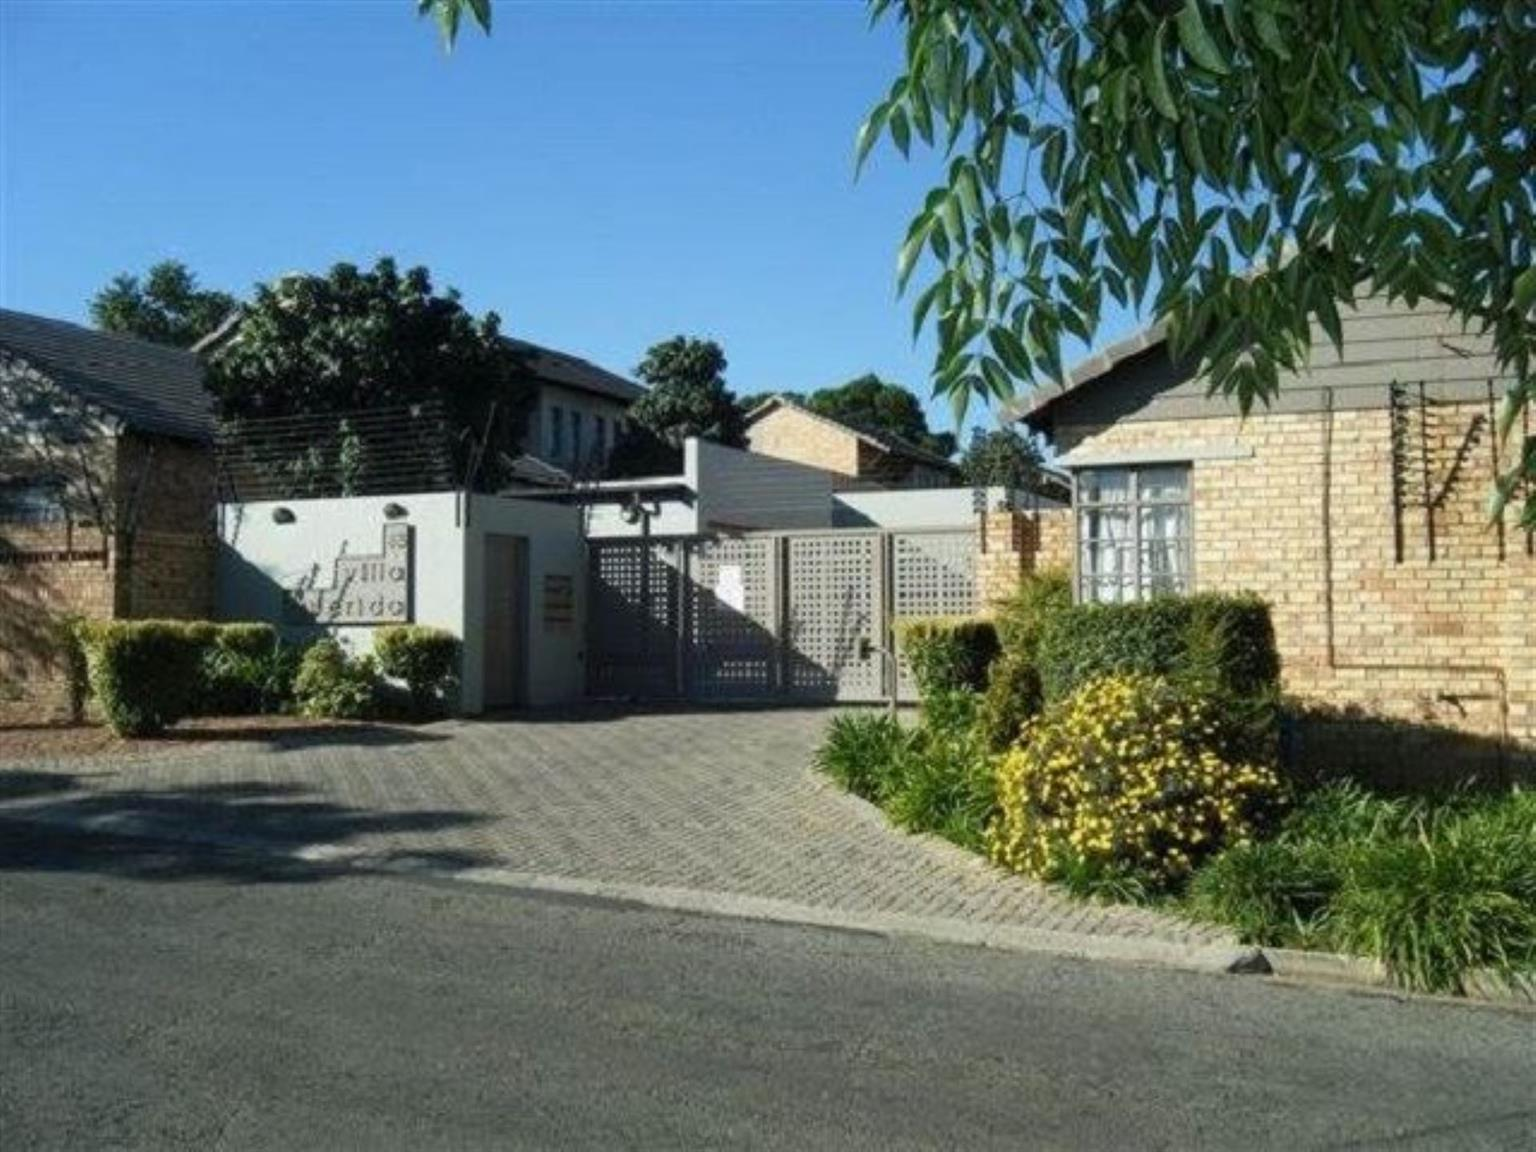 Cluster Rental Monthly in EASTLEIGH